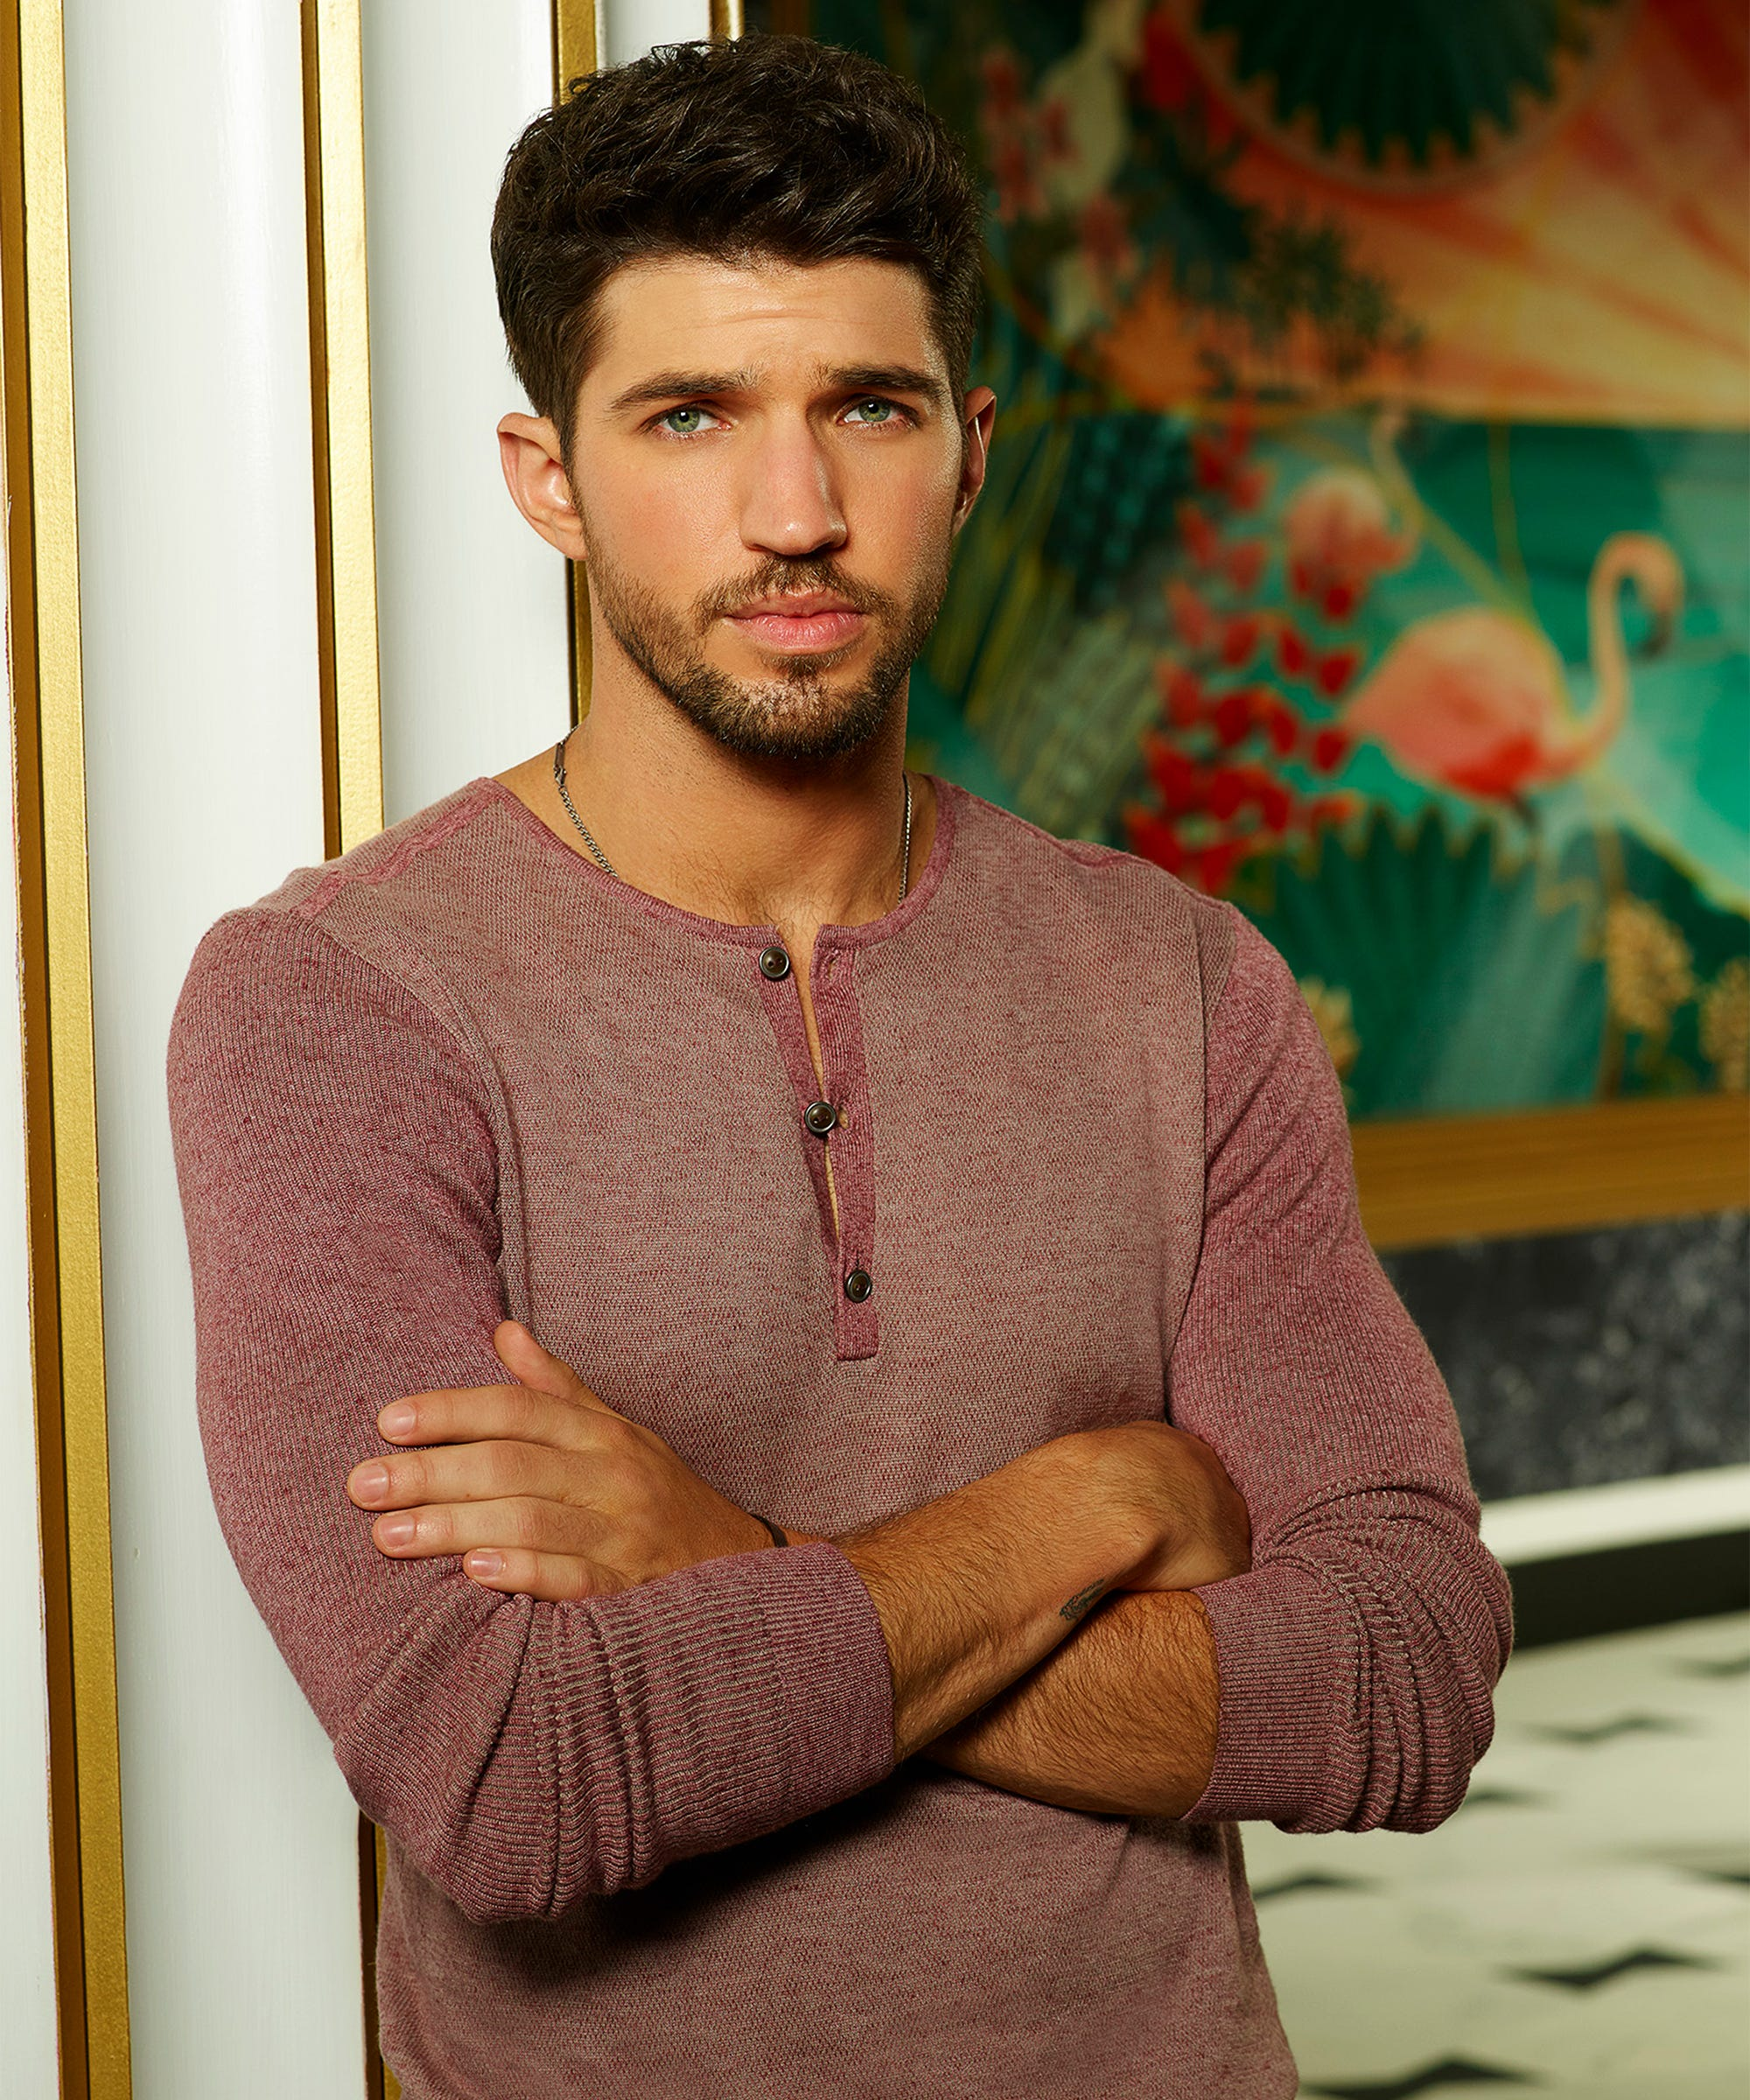 Grand Hotel's Bryan Craig Is A Long-Time Soap Star, But He Still Put In The Work To Play Javi